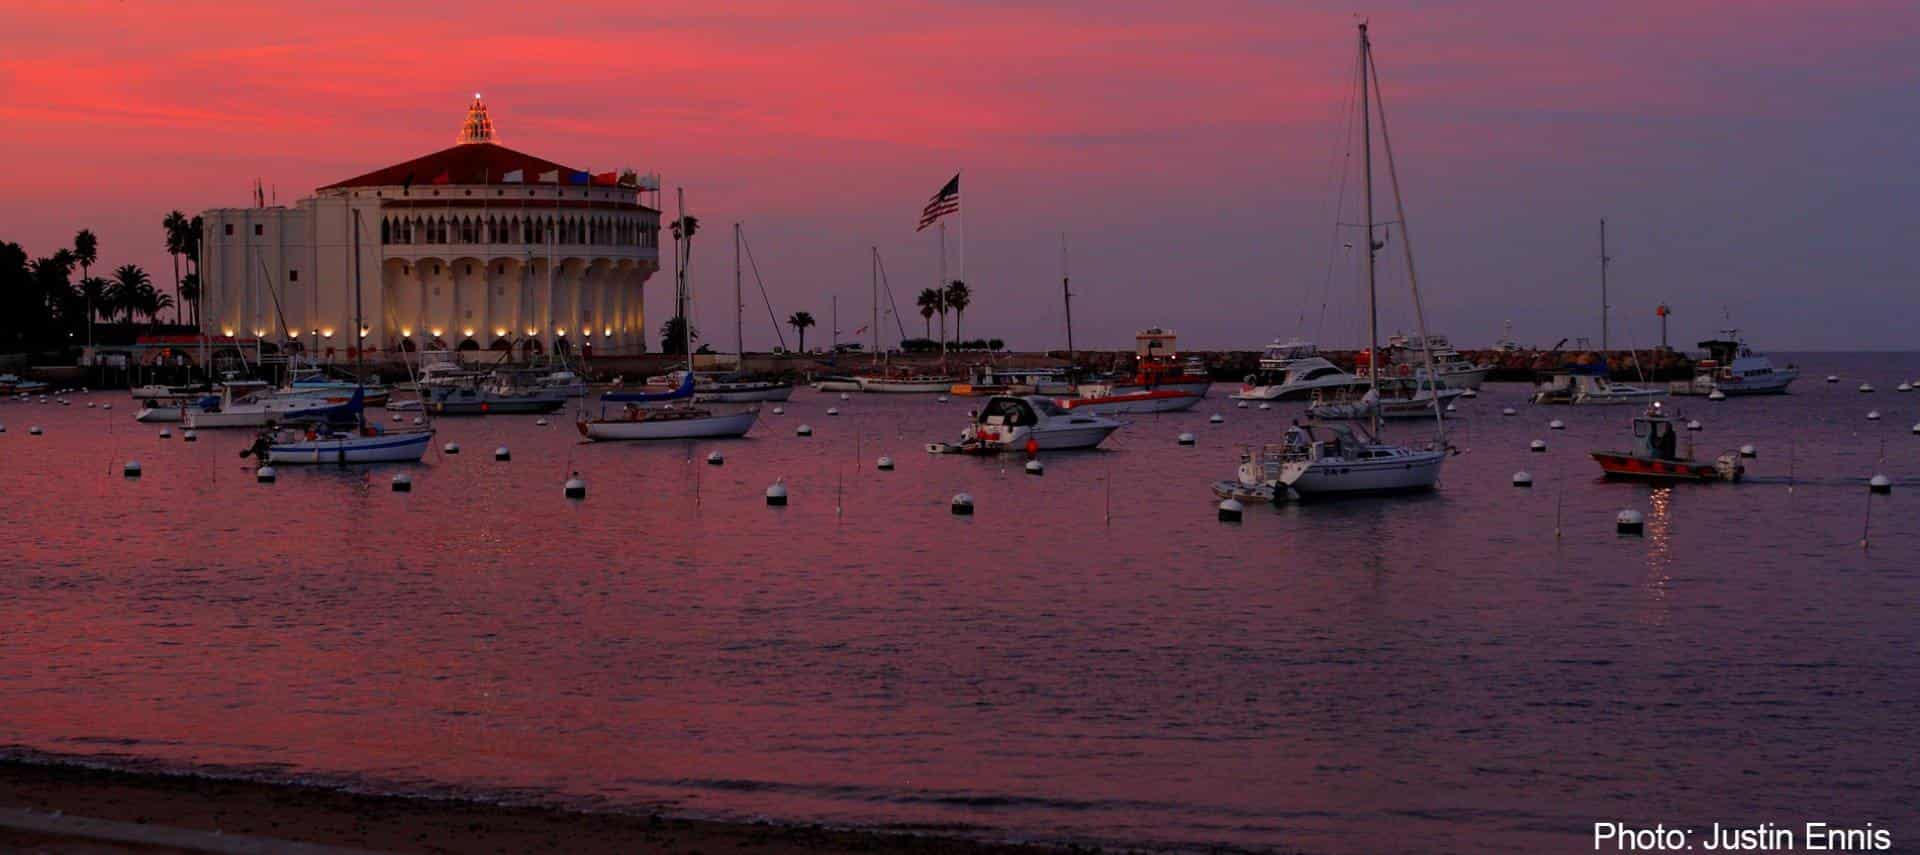 View of an ocean marina at dusk with soft purple and pink colors in the sky